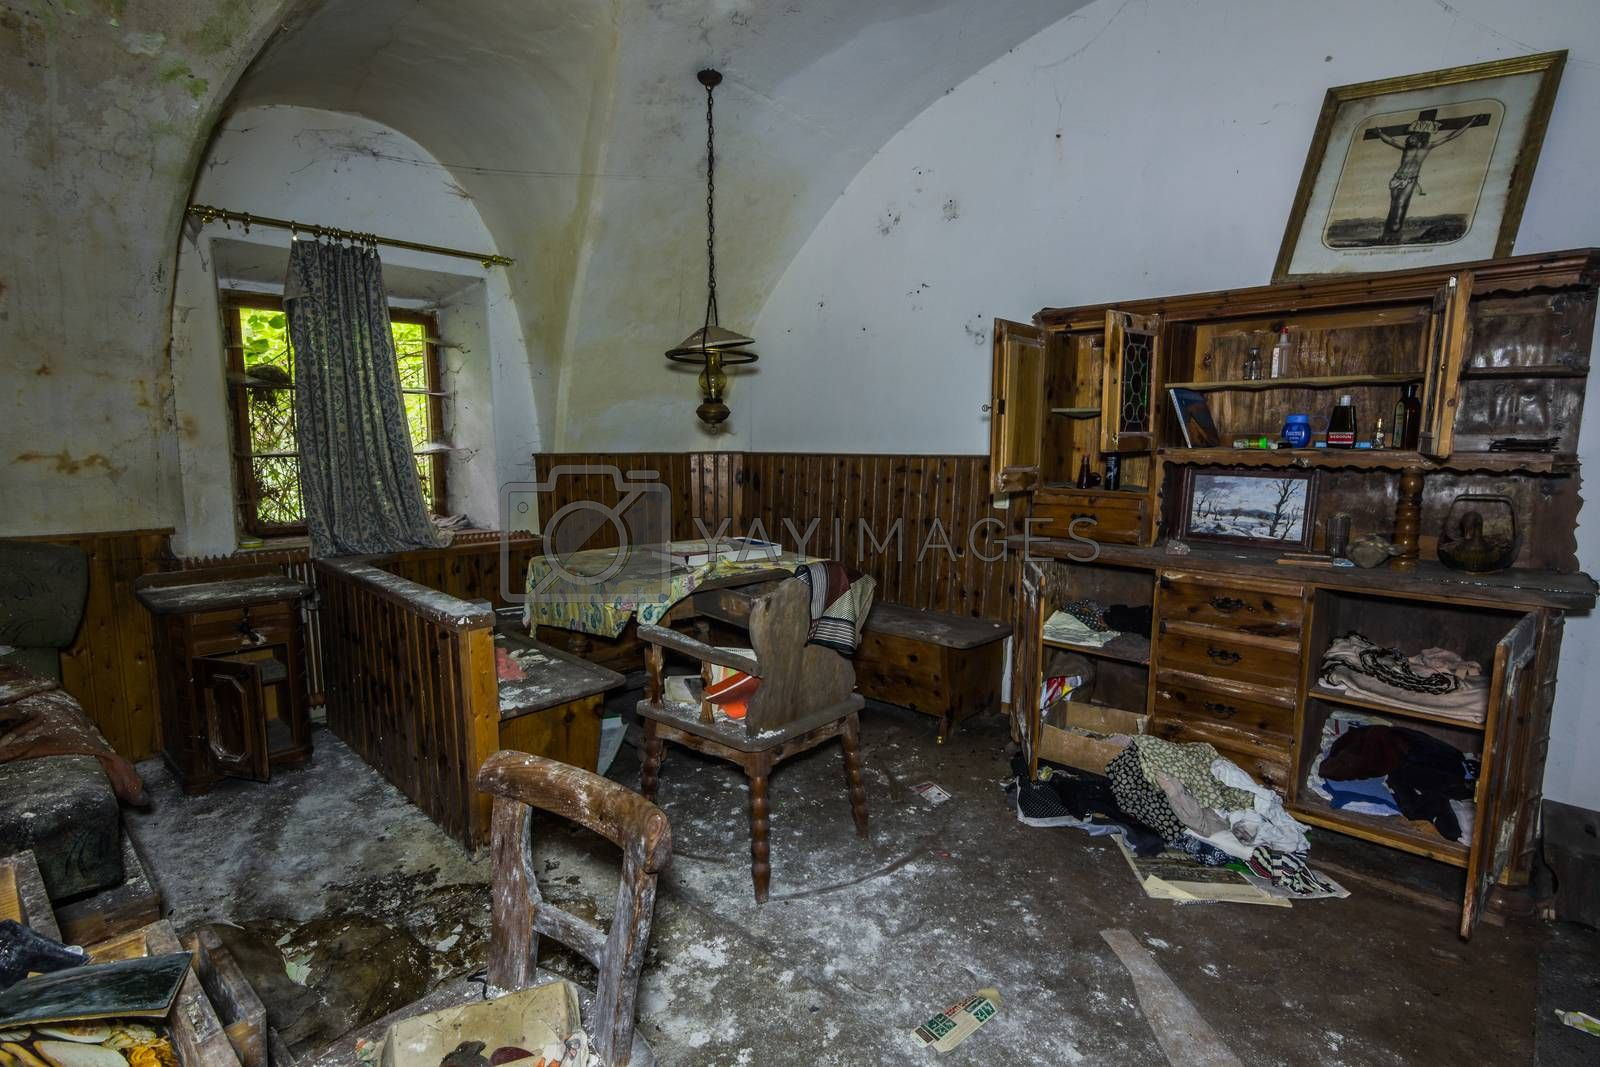 wooden furniture with mold in a room with many objects